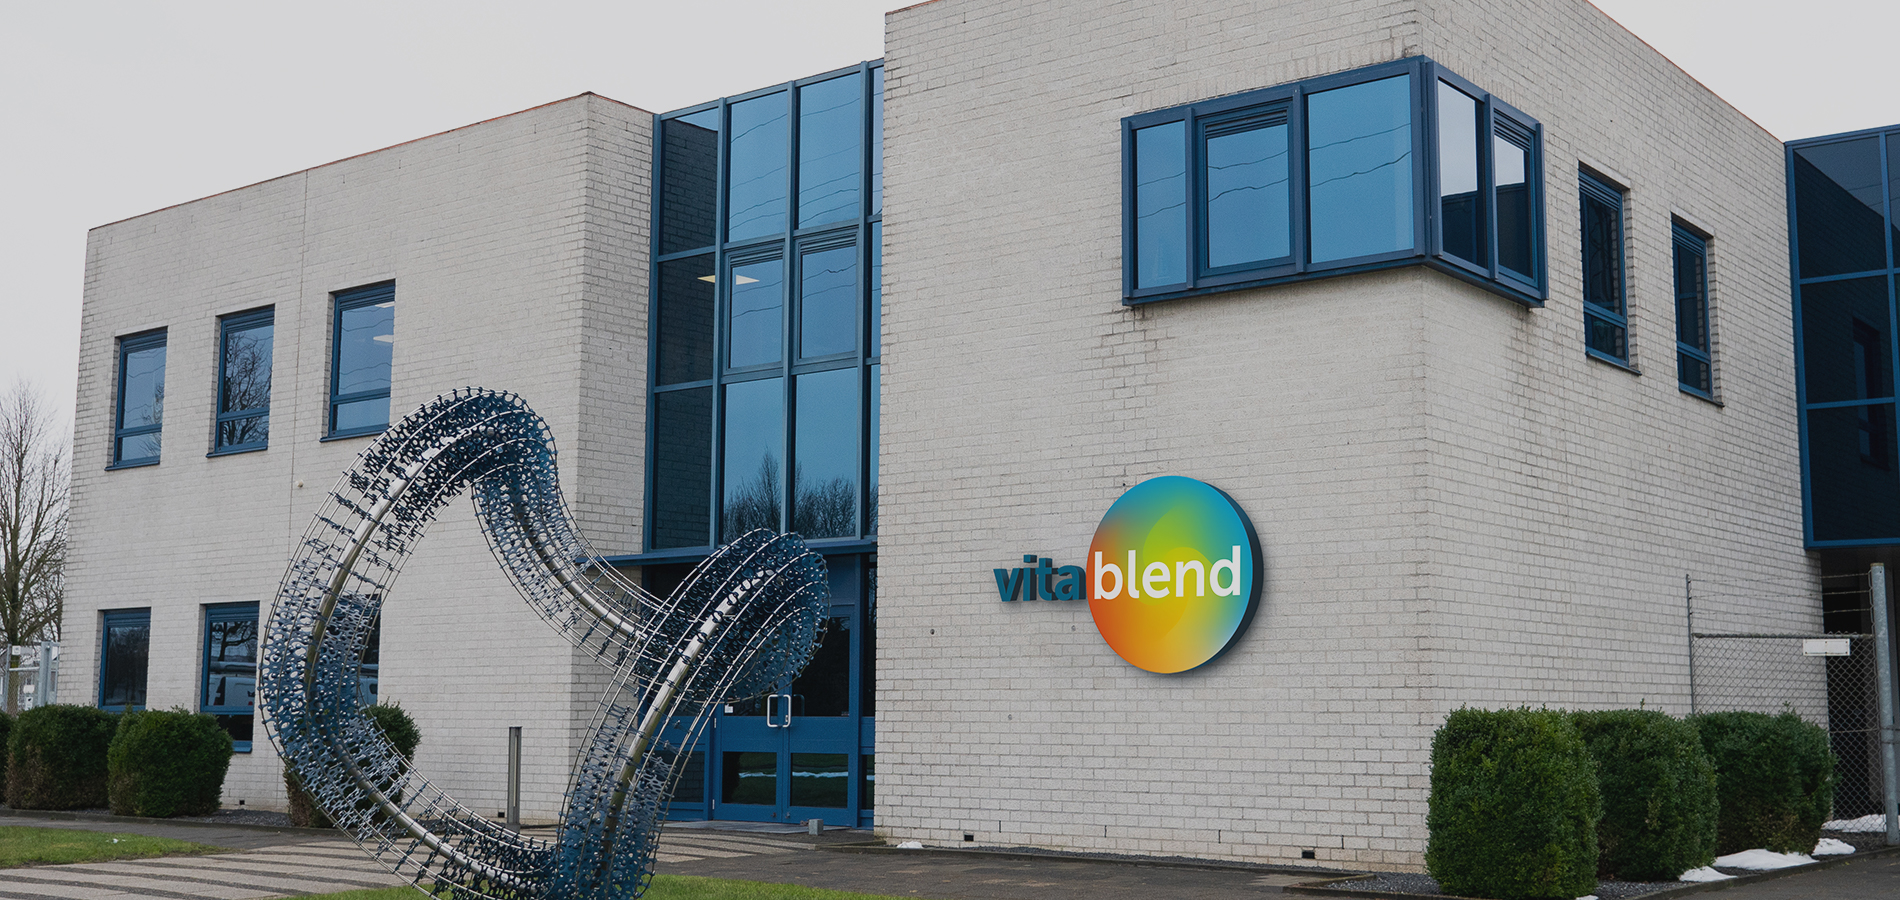 Front of the Vitablend building in Wolvega, the Netherlands